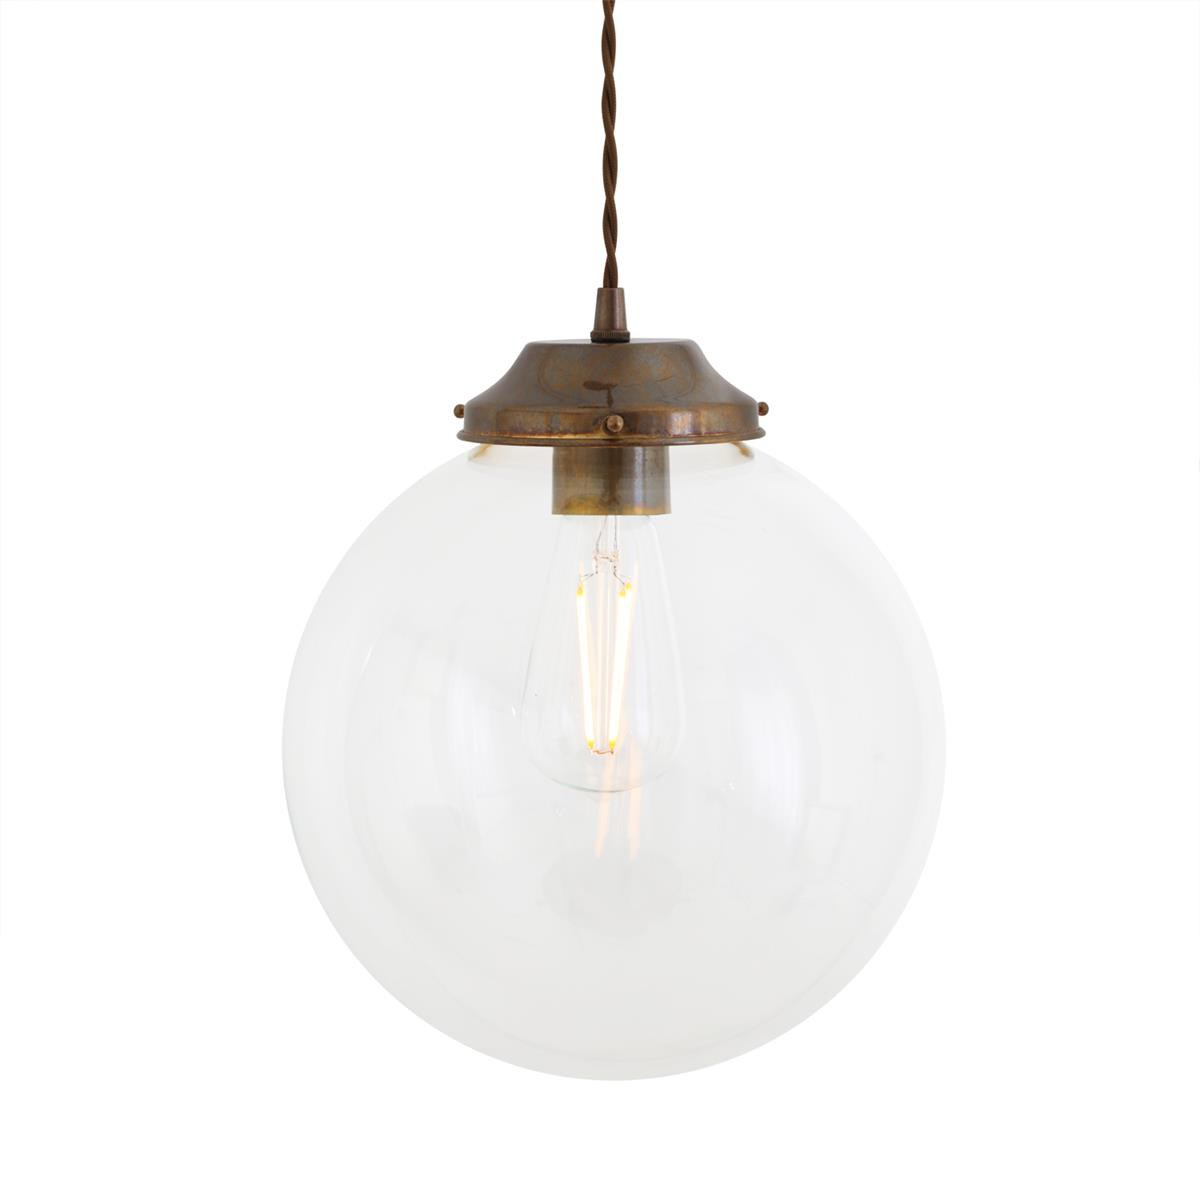 Virginia Clear Globe Pendant Light Antique Brass, 25cm